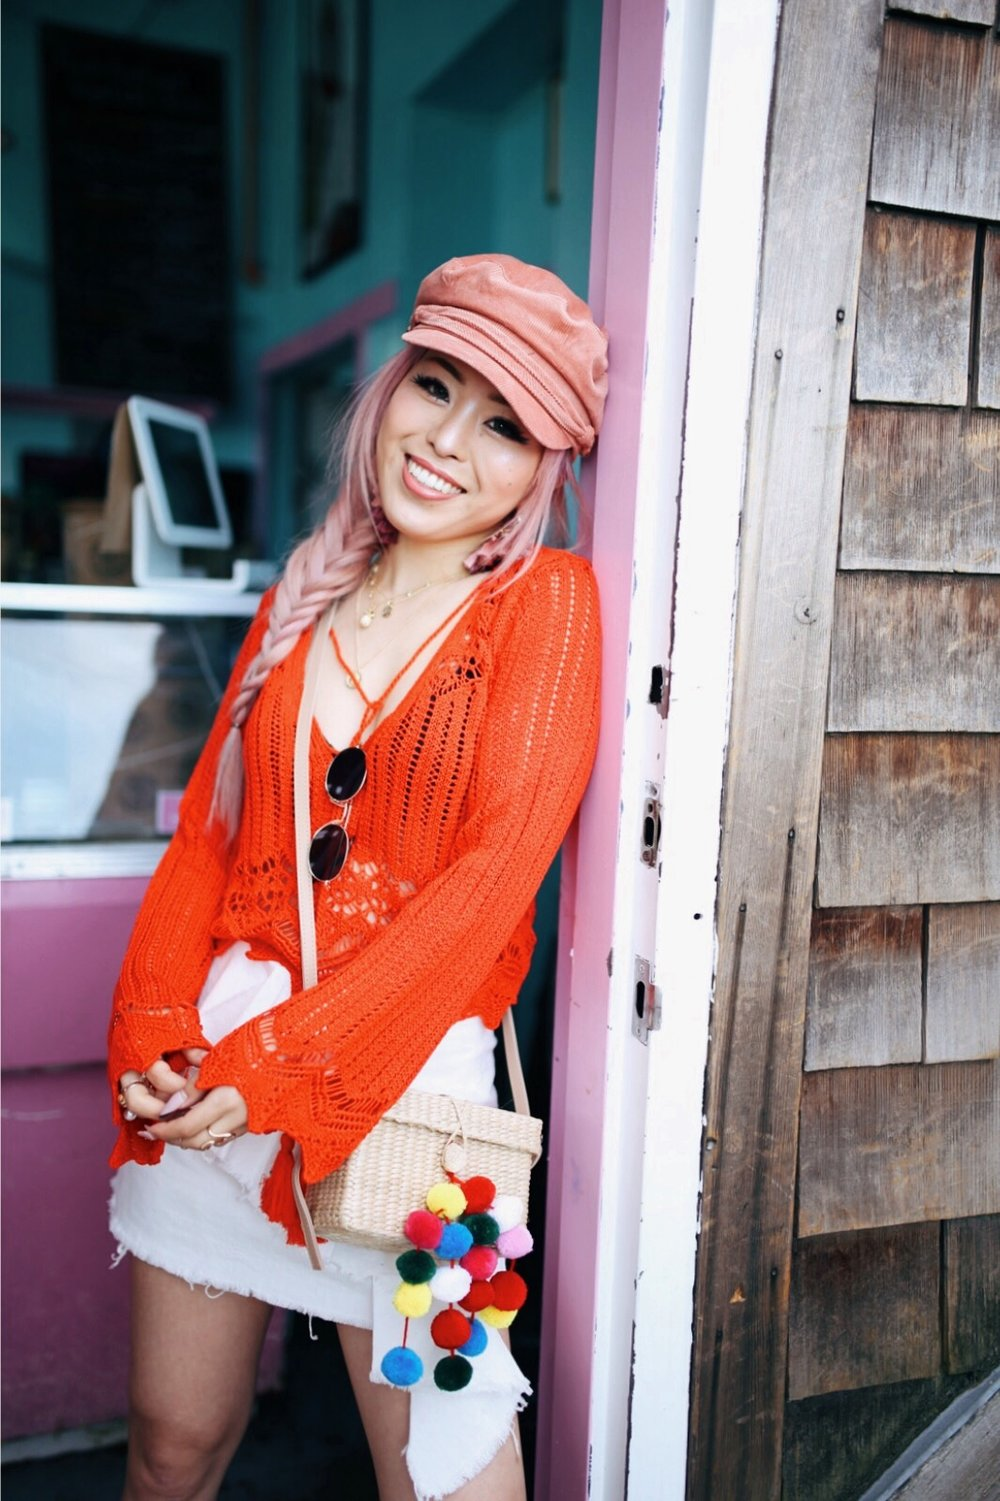 River Island Pink cord baker boy hat-Pink ombre tassel drop earrings-Red crotchet knit tassel crop top-White frill denim skort-White scallop block heel sandals-Shein Straw box bag with pom pom-Aikas Love Closet-Seattle Style Fashion Blogger-Japanese-Pink Hair-Side fishtail braid-summer style-smile 2